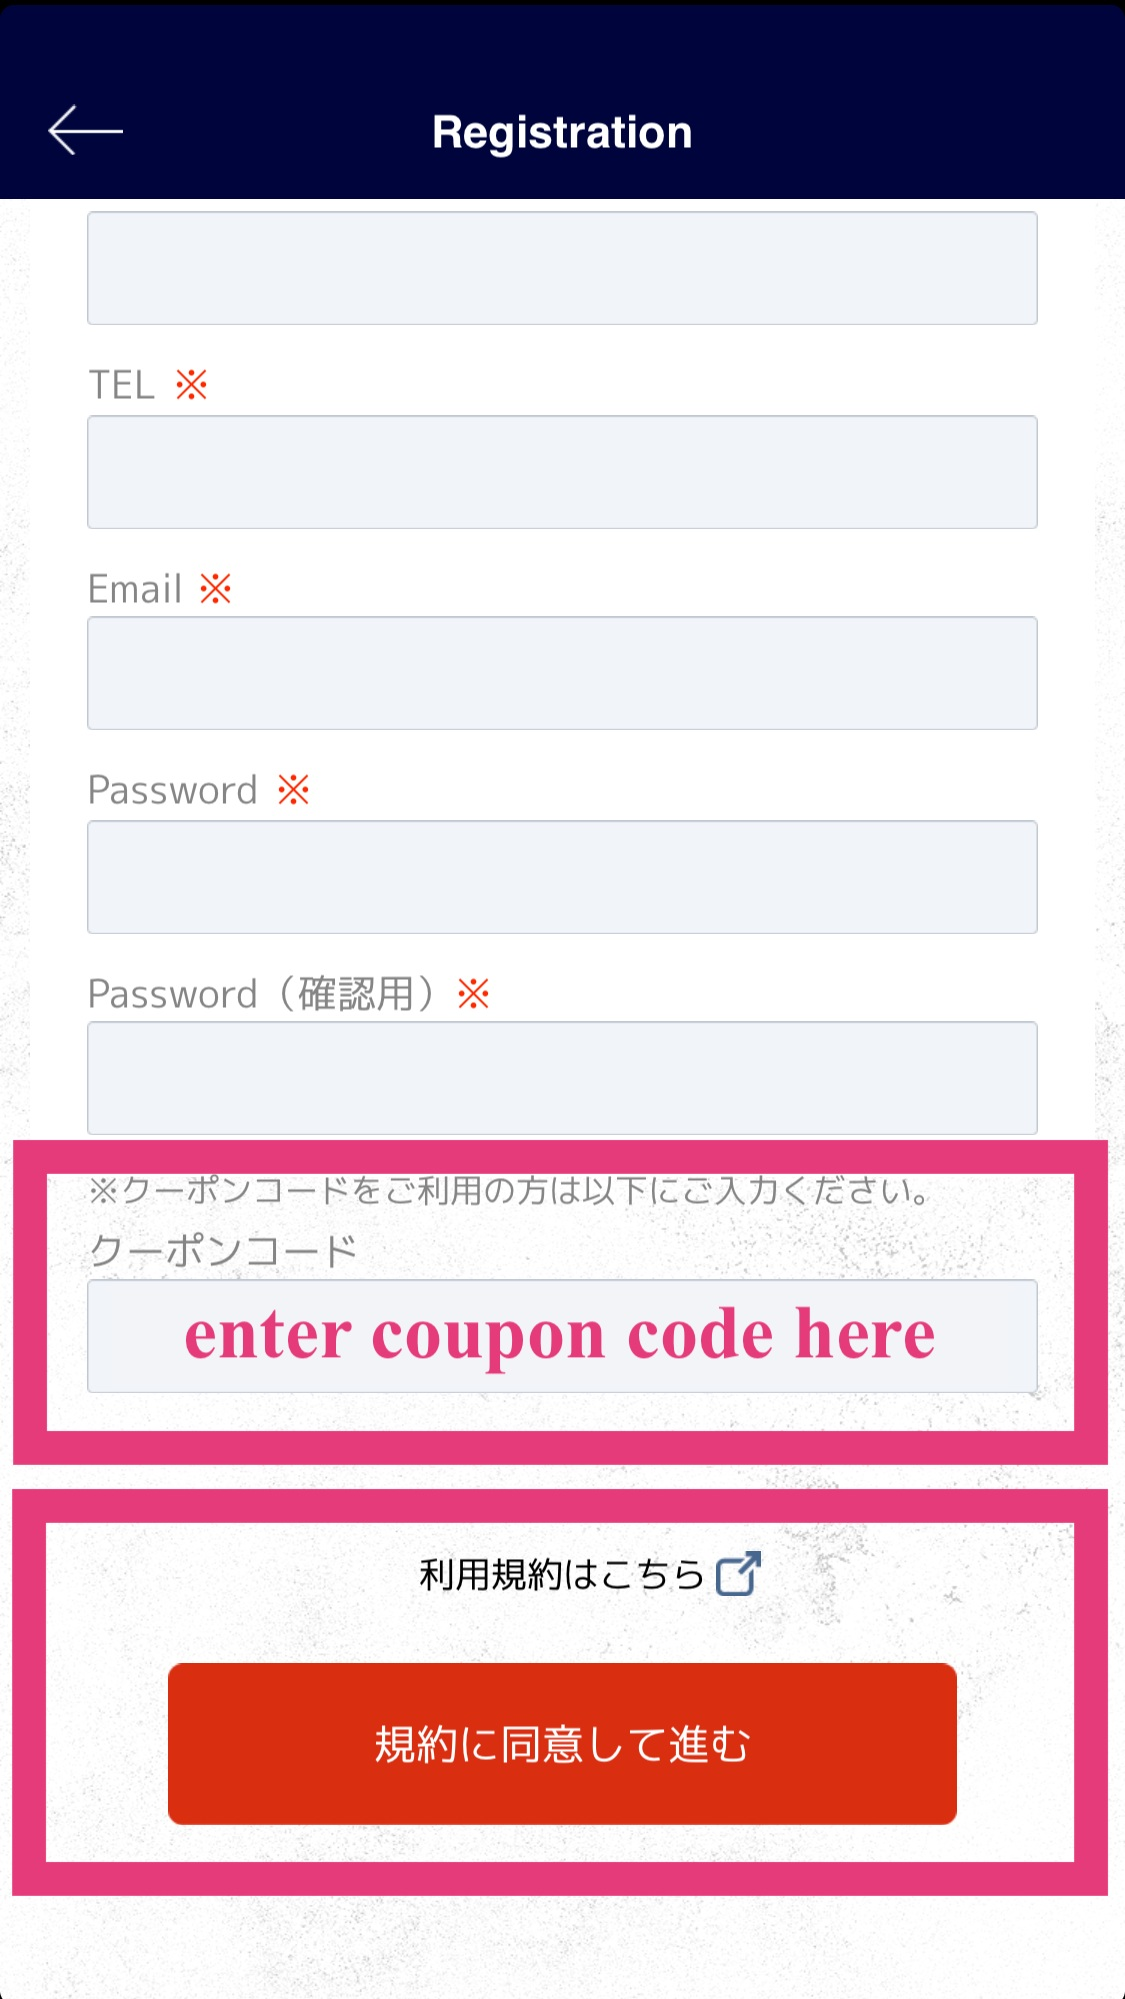 4. Fill out your info and coupon code in the last box.   NOTE:  if you are redirected to a payment page, go back. You  do not need to pay  with the coupon code.